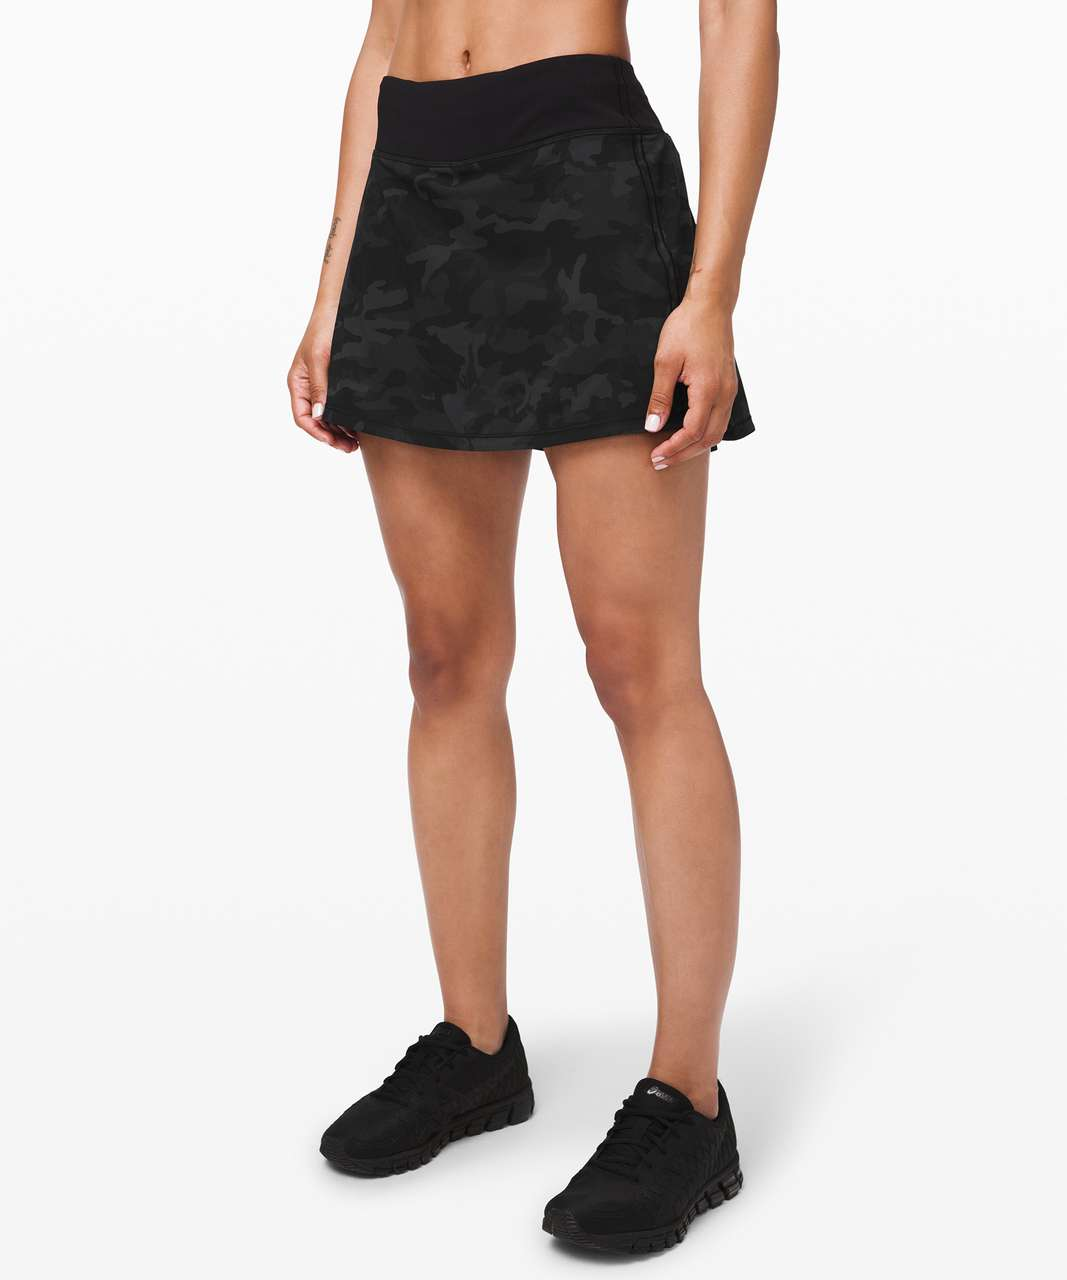 "Lululemon Pace Rival Skirt (Tall) *No Panels 15"" - Incognito Camo Multi Grey / Black"